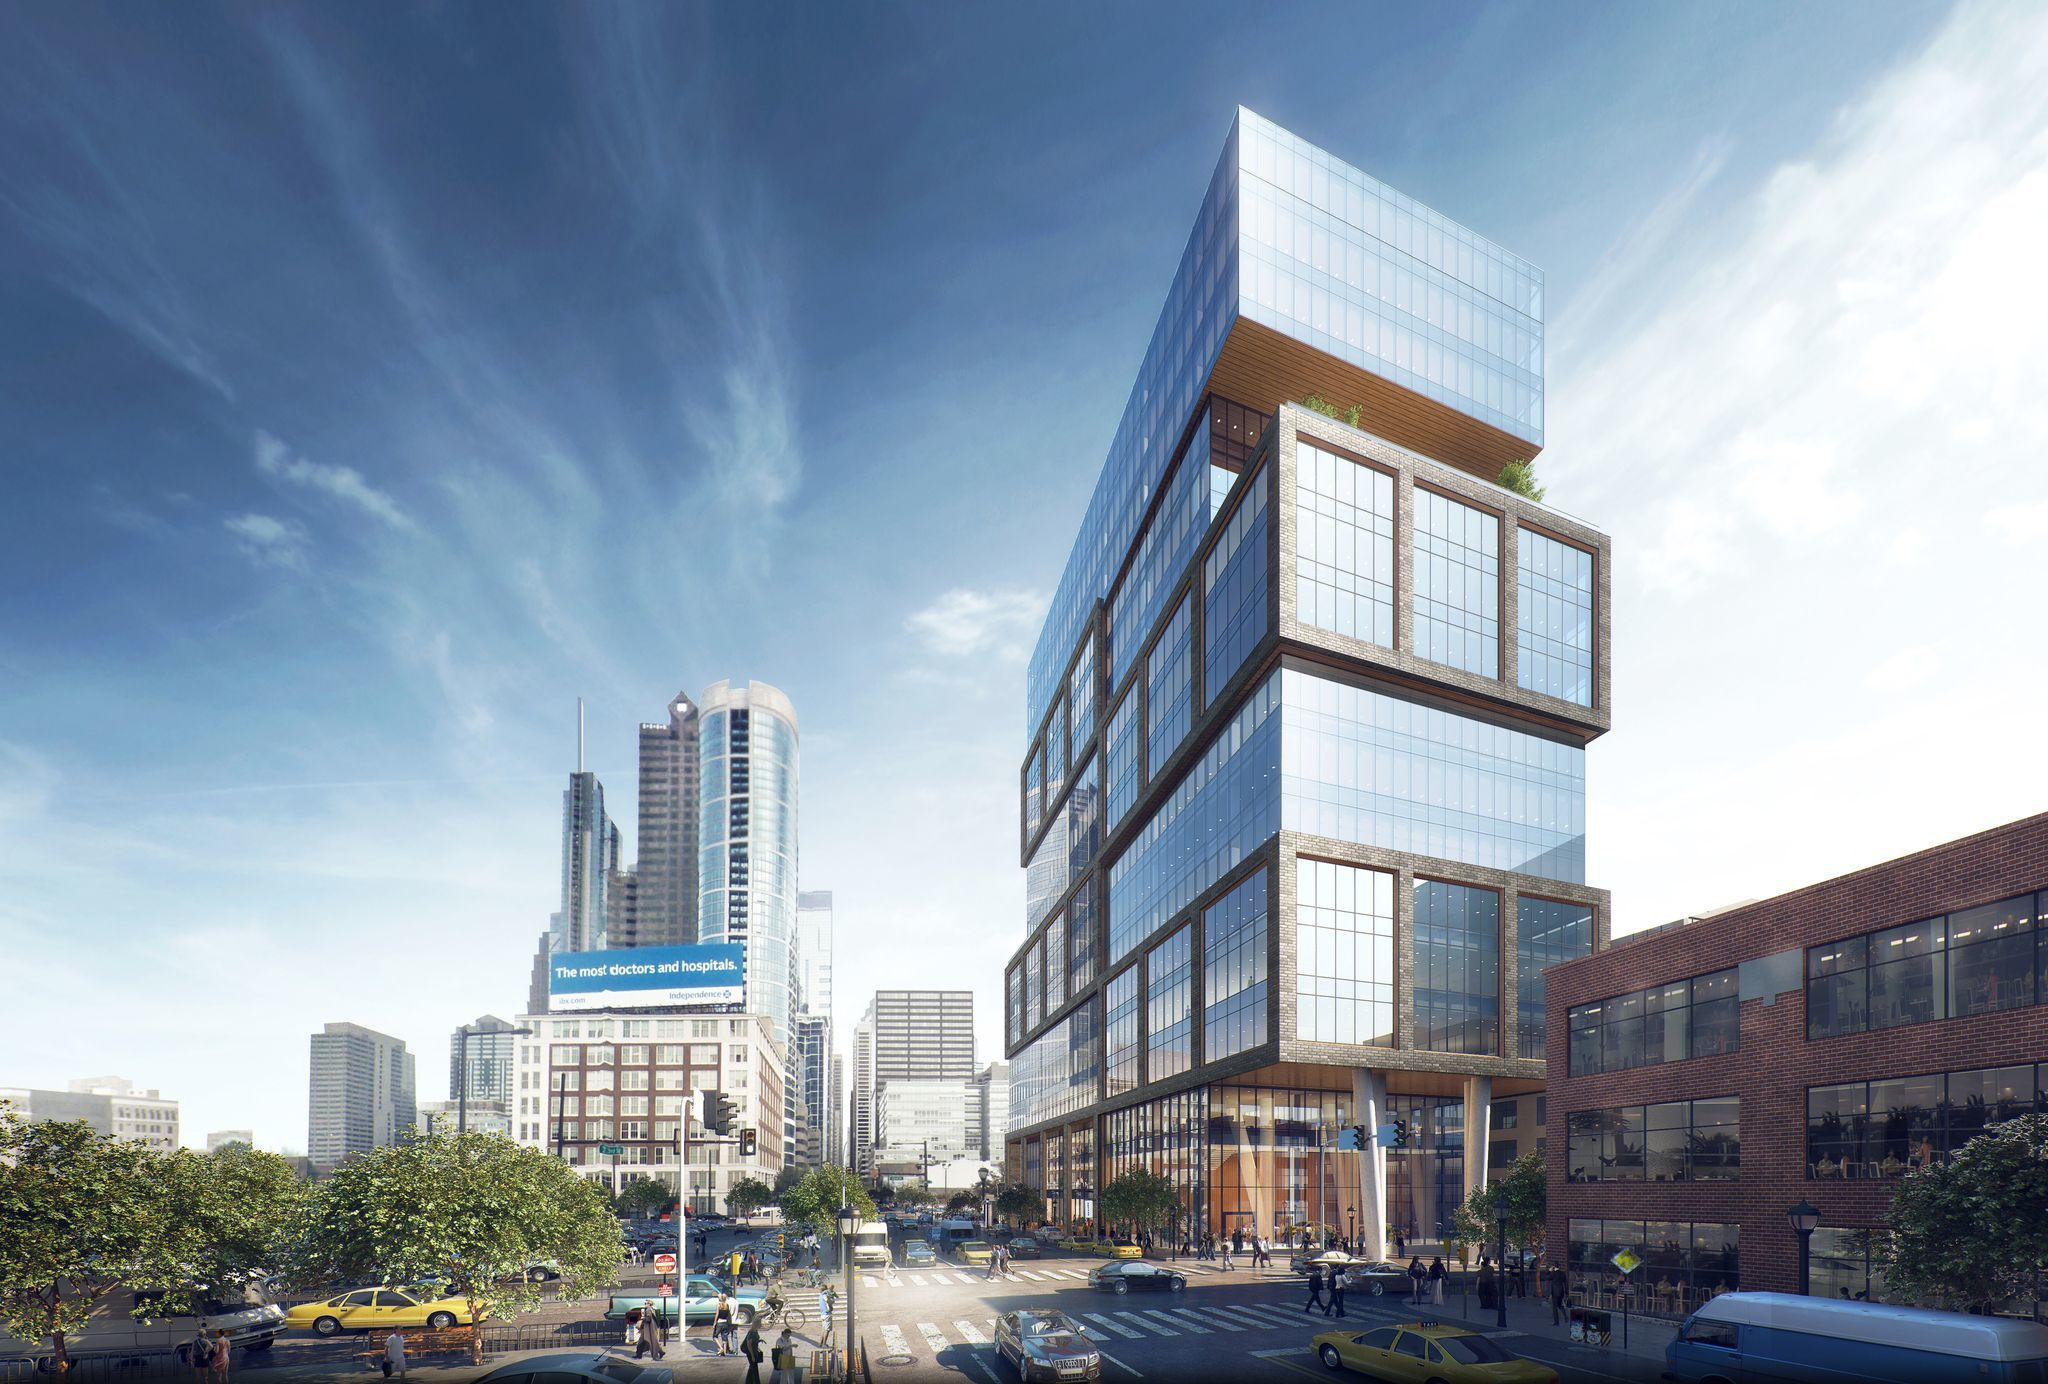 Law Firm Lease Clears Way For Center City S First Non Comcast Office Tower In A Generation